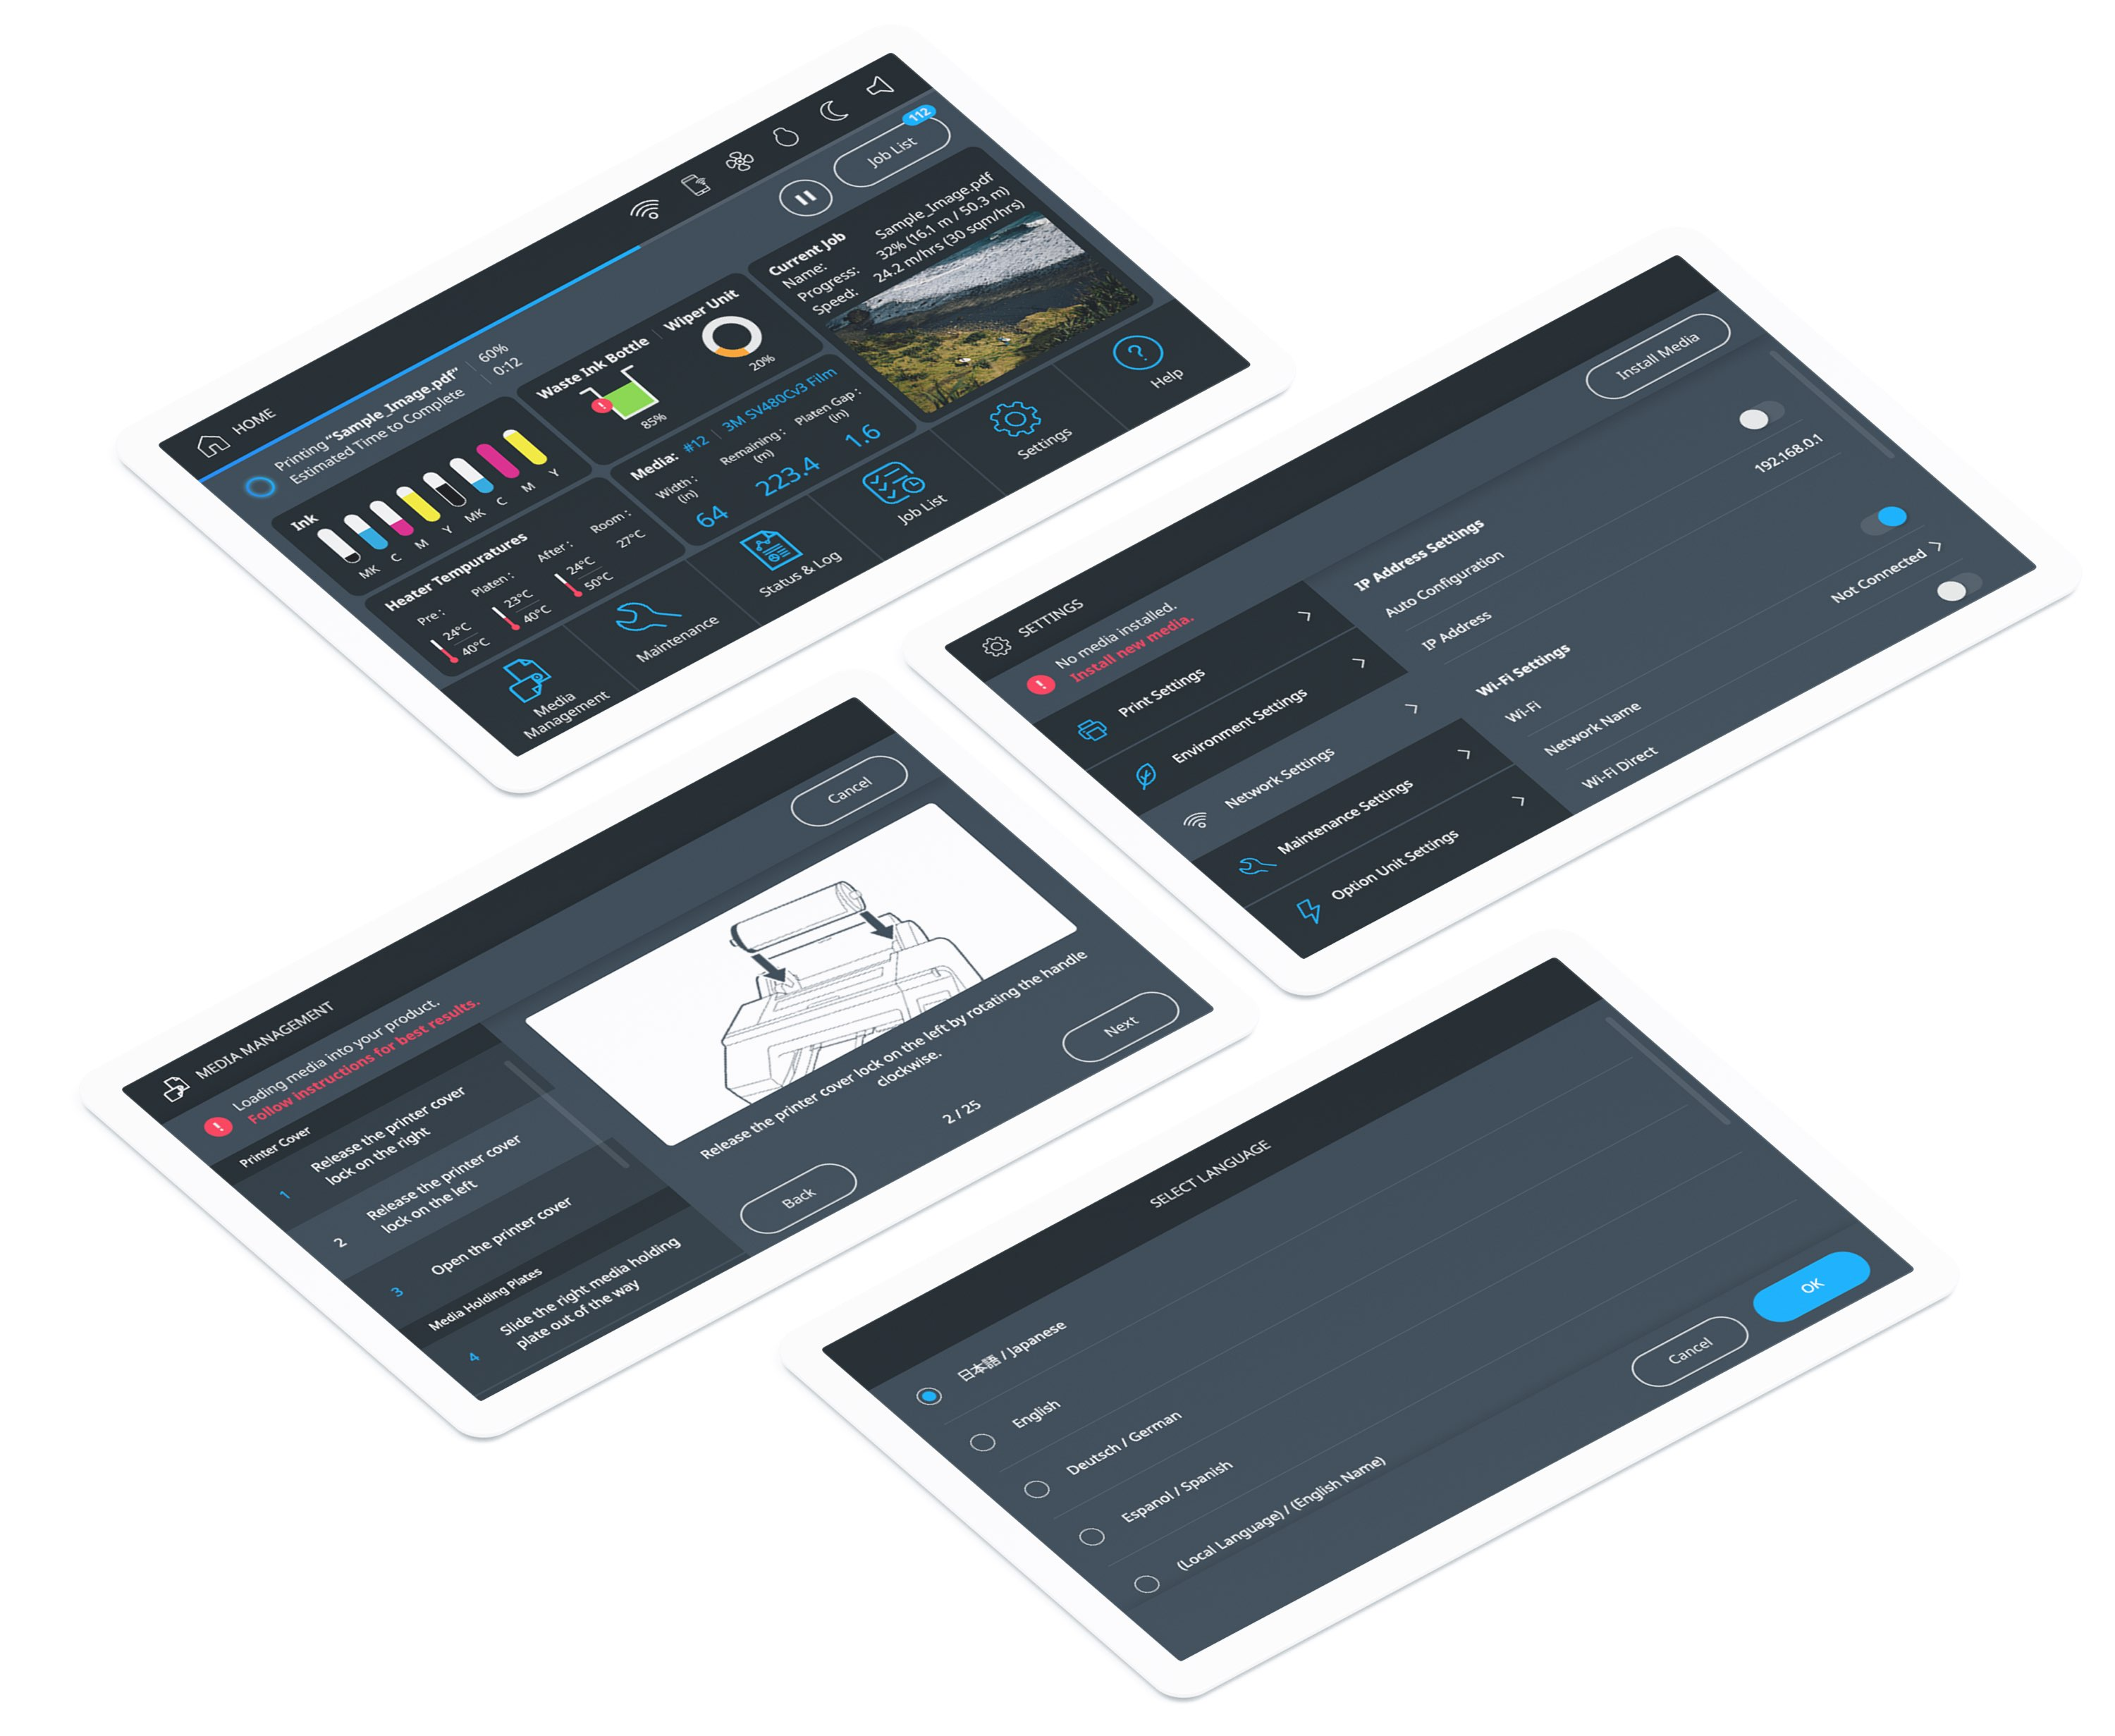 Epson's design agency touch screen interface design